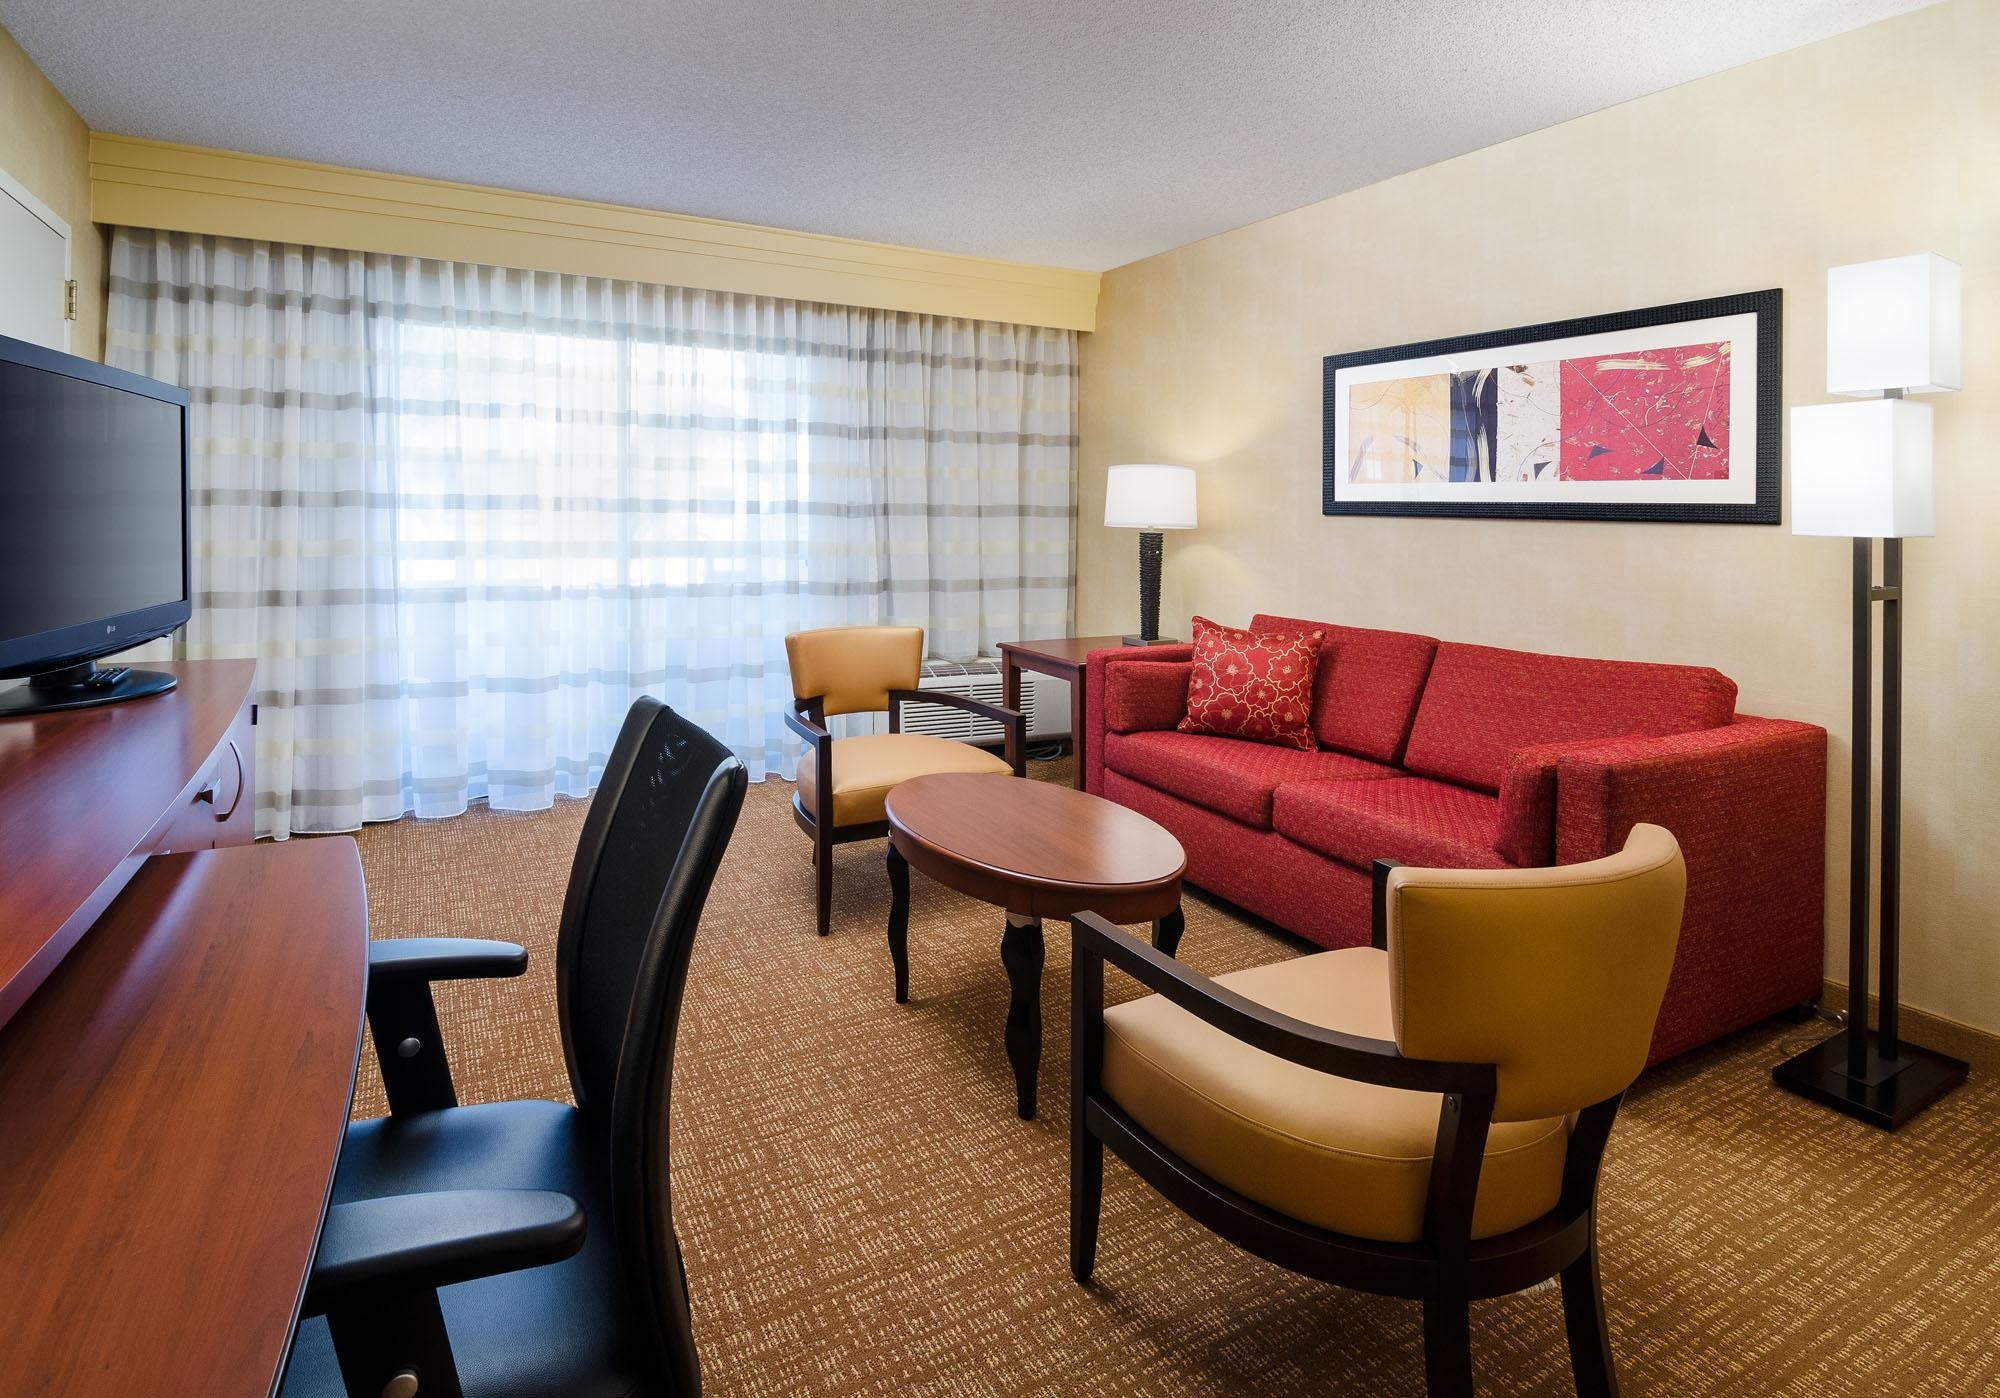 Courtyard by Marriott Fresno image 7